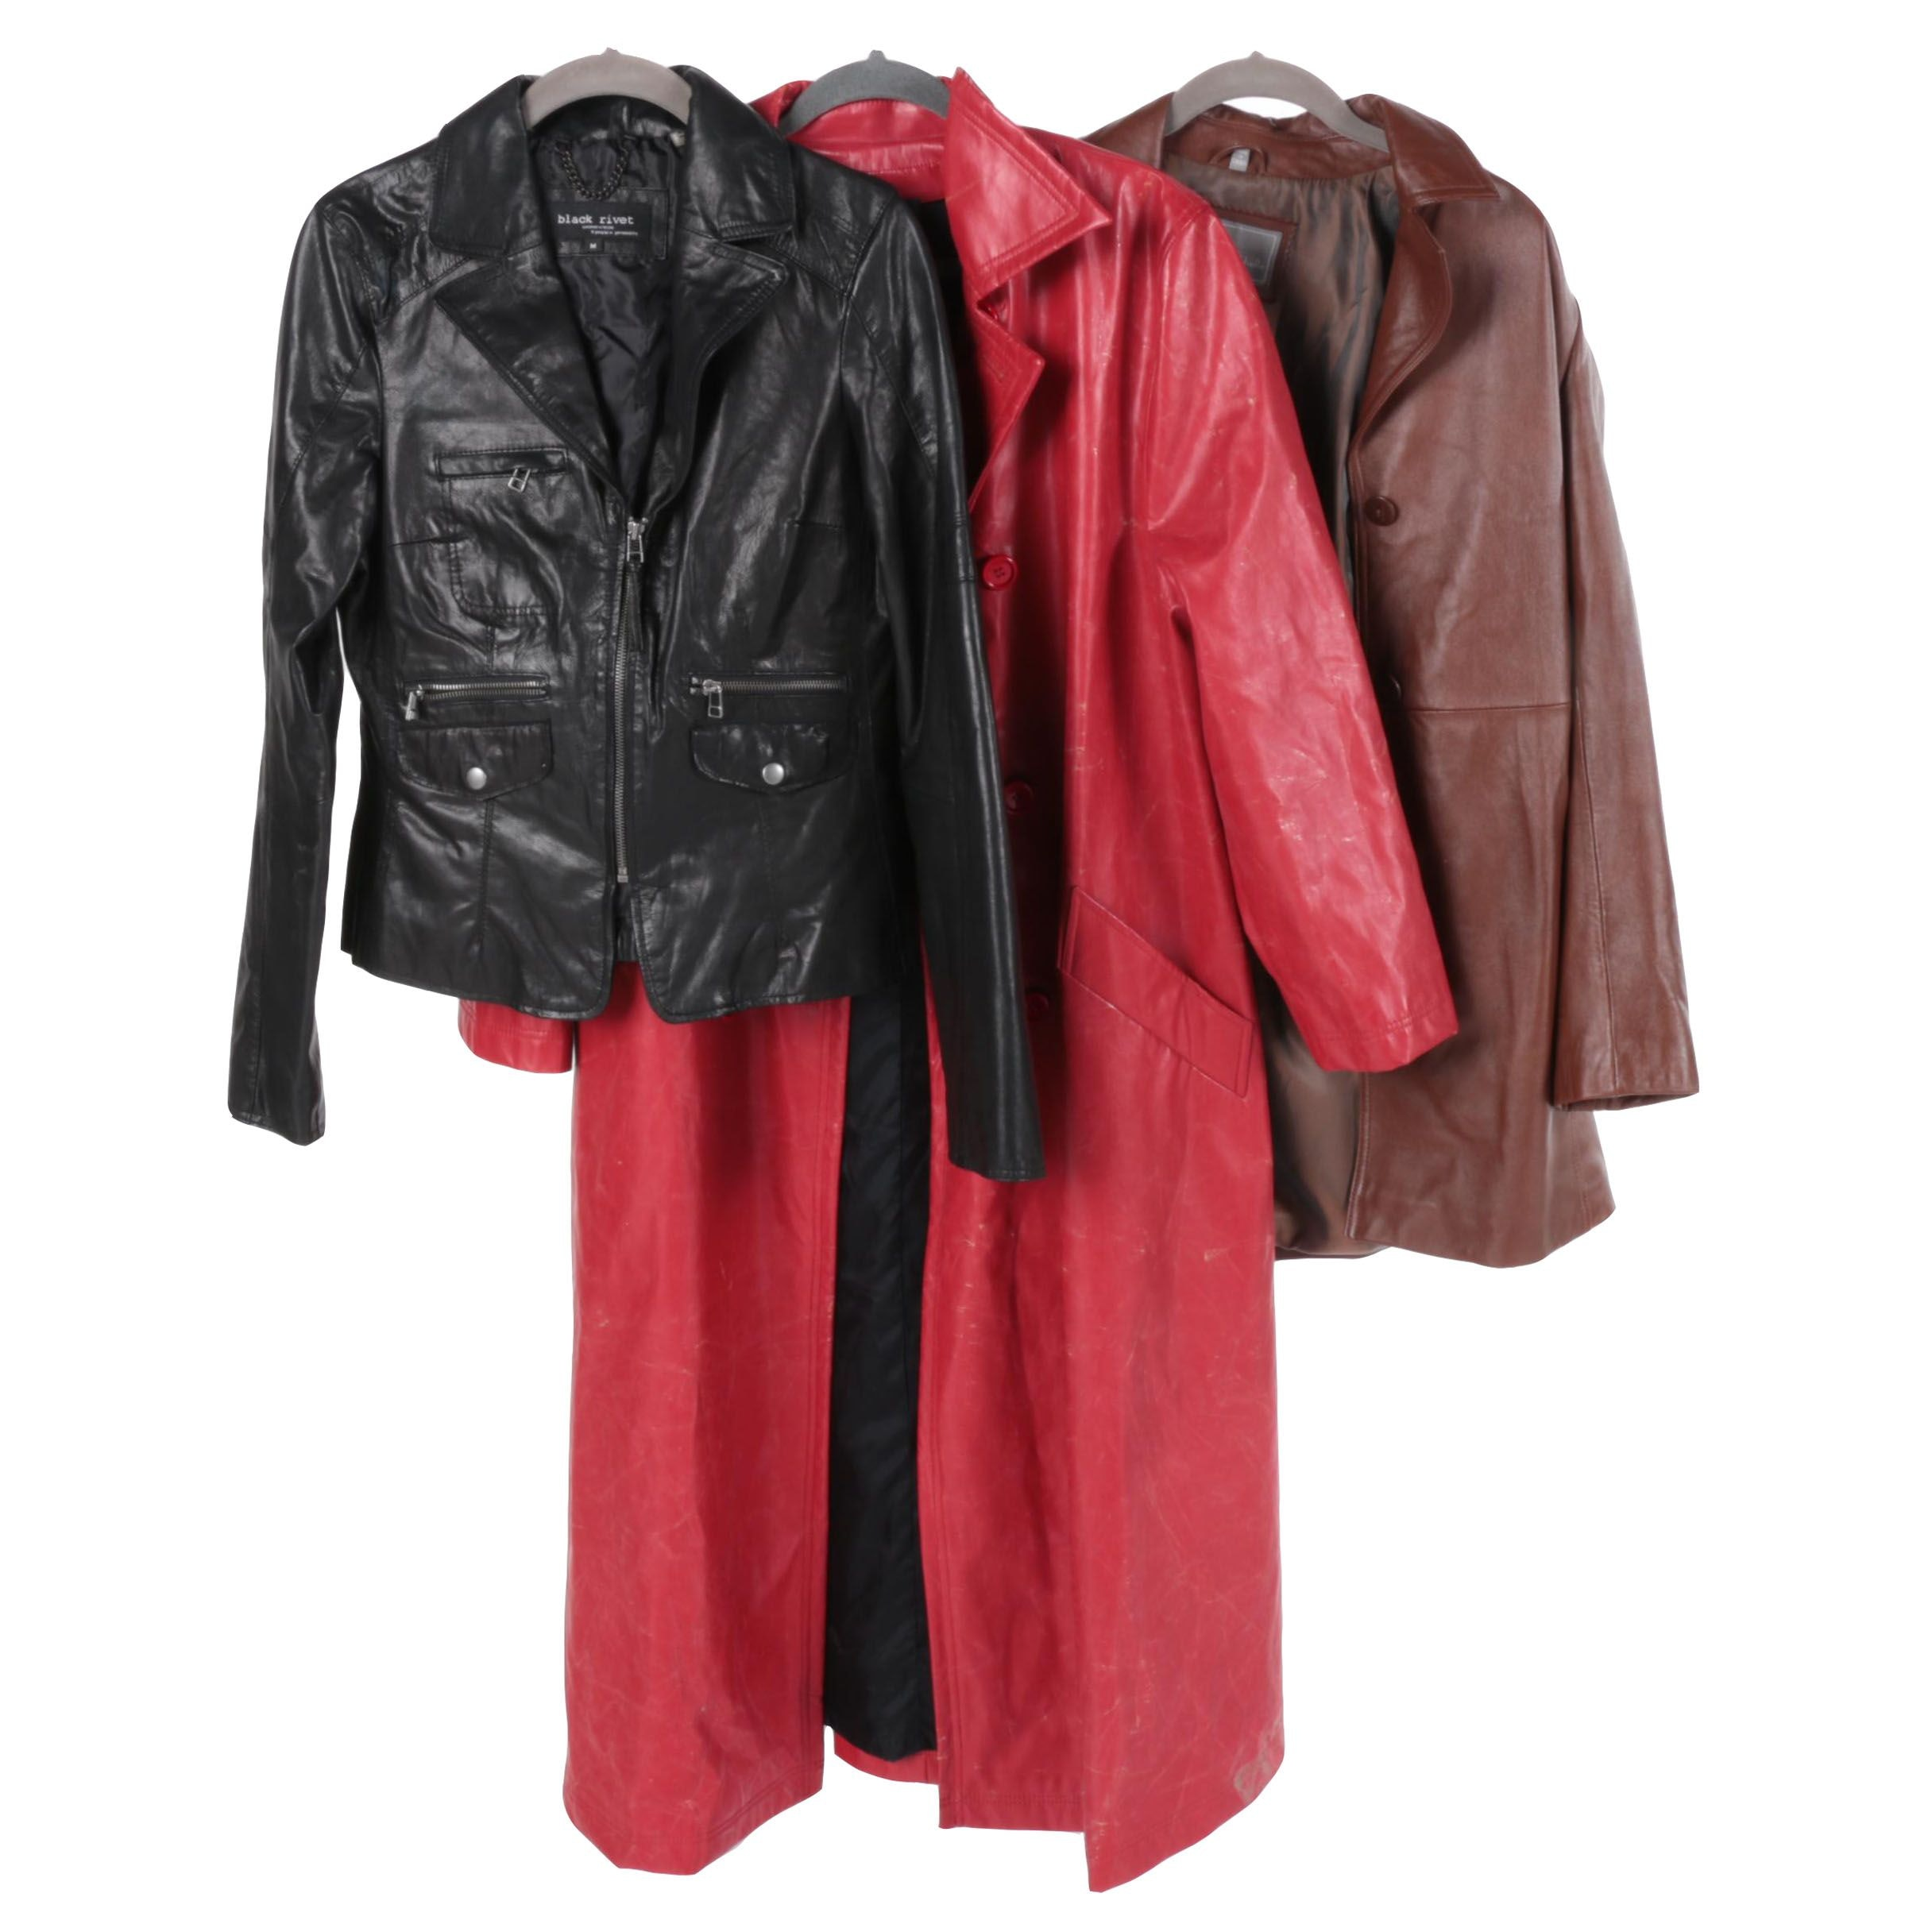 Women's Leather Jackets and Coats Including Harve Benard by Bernard Holtzman